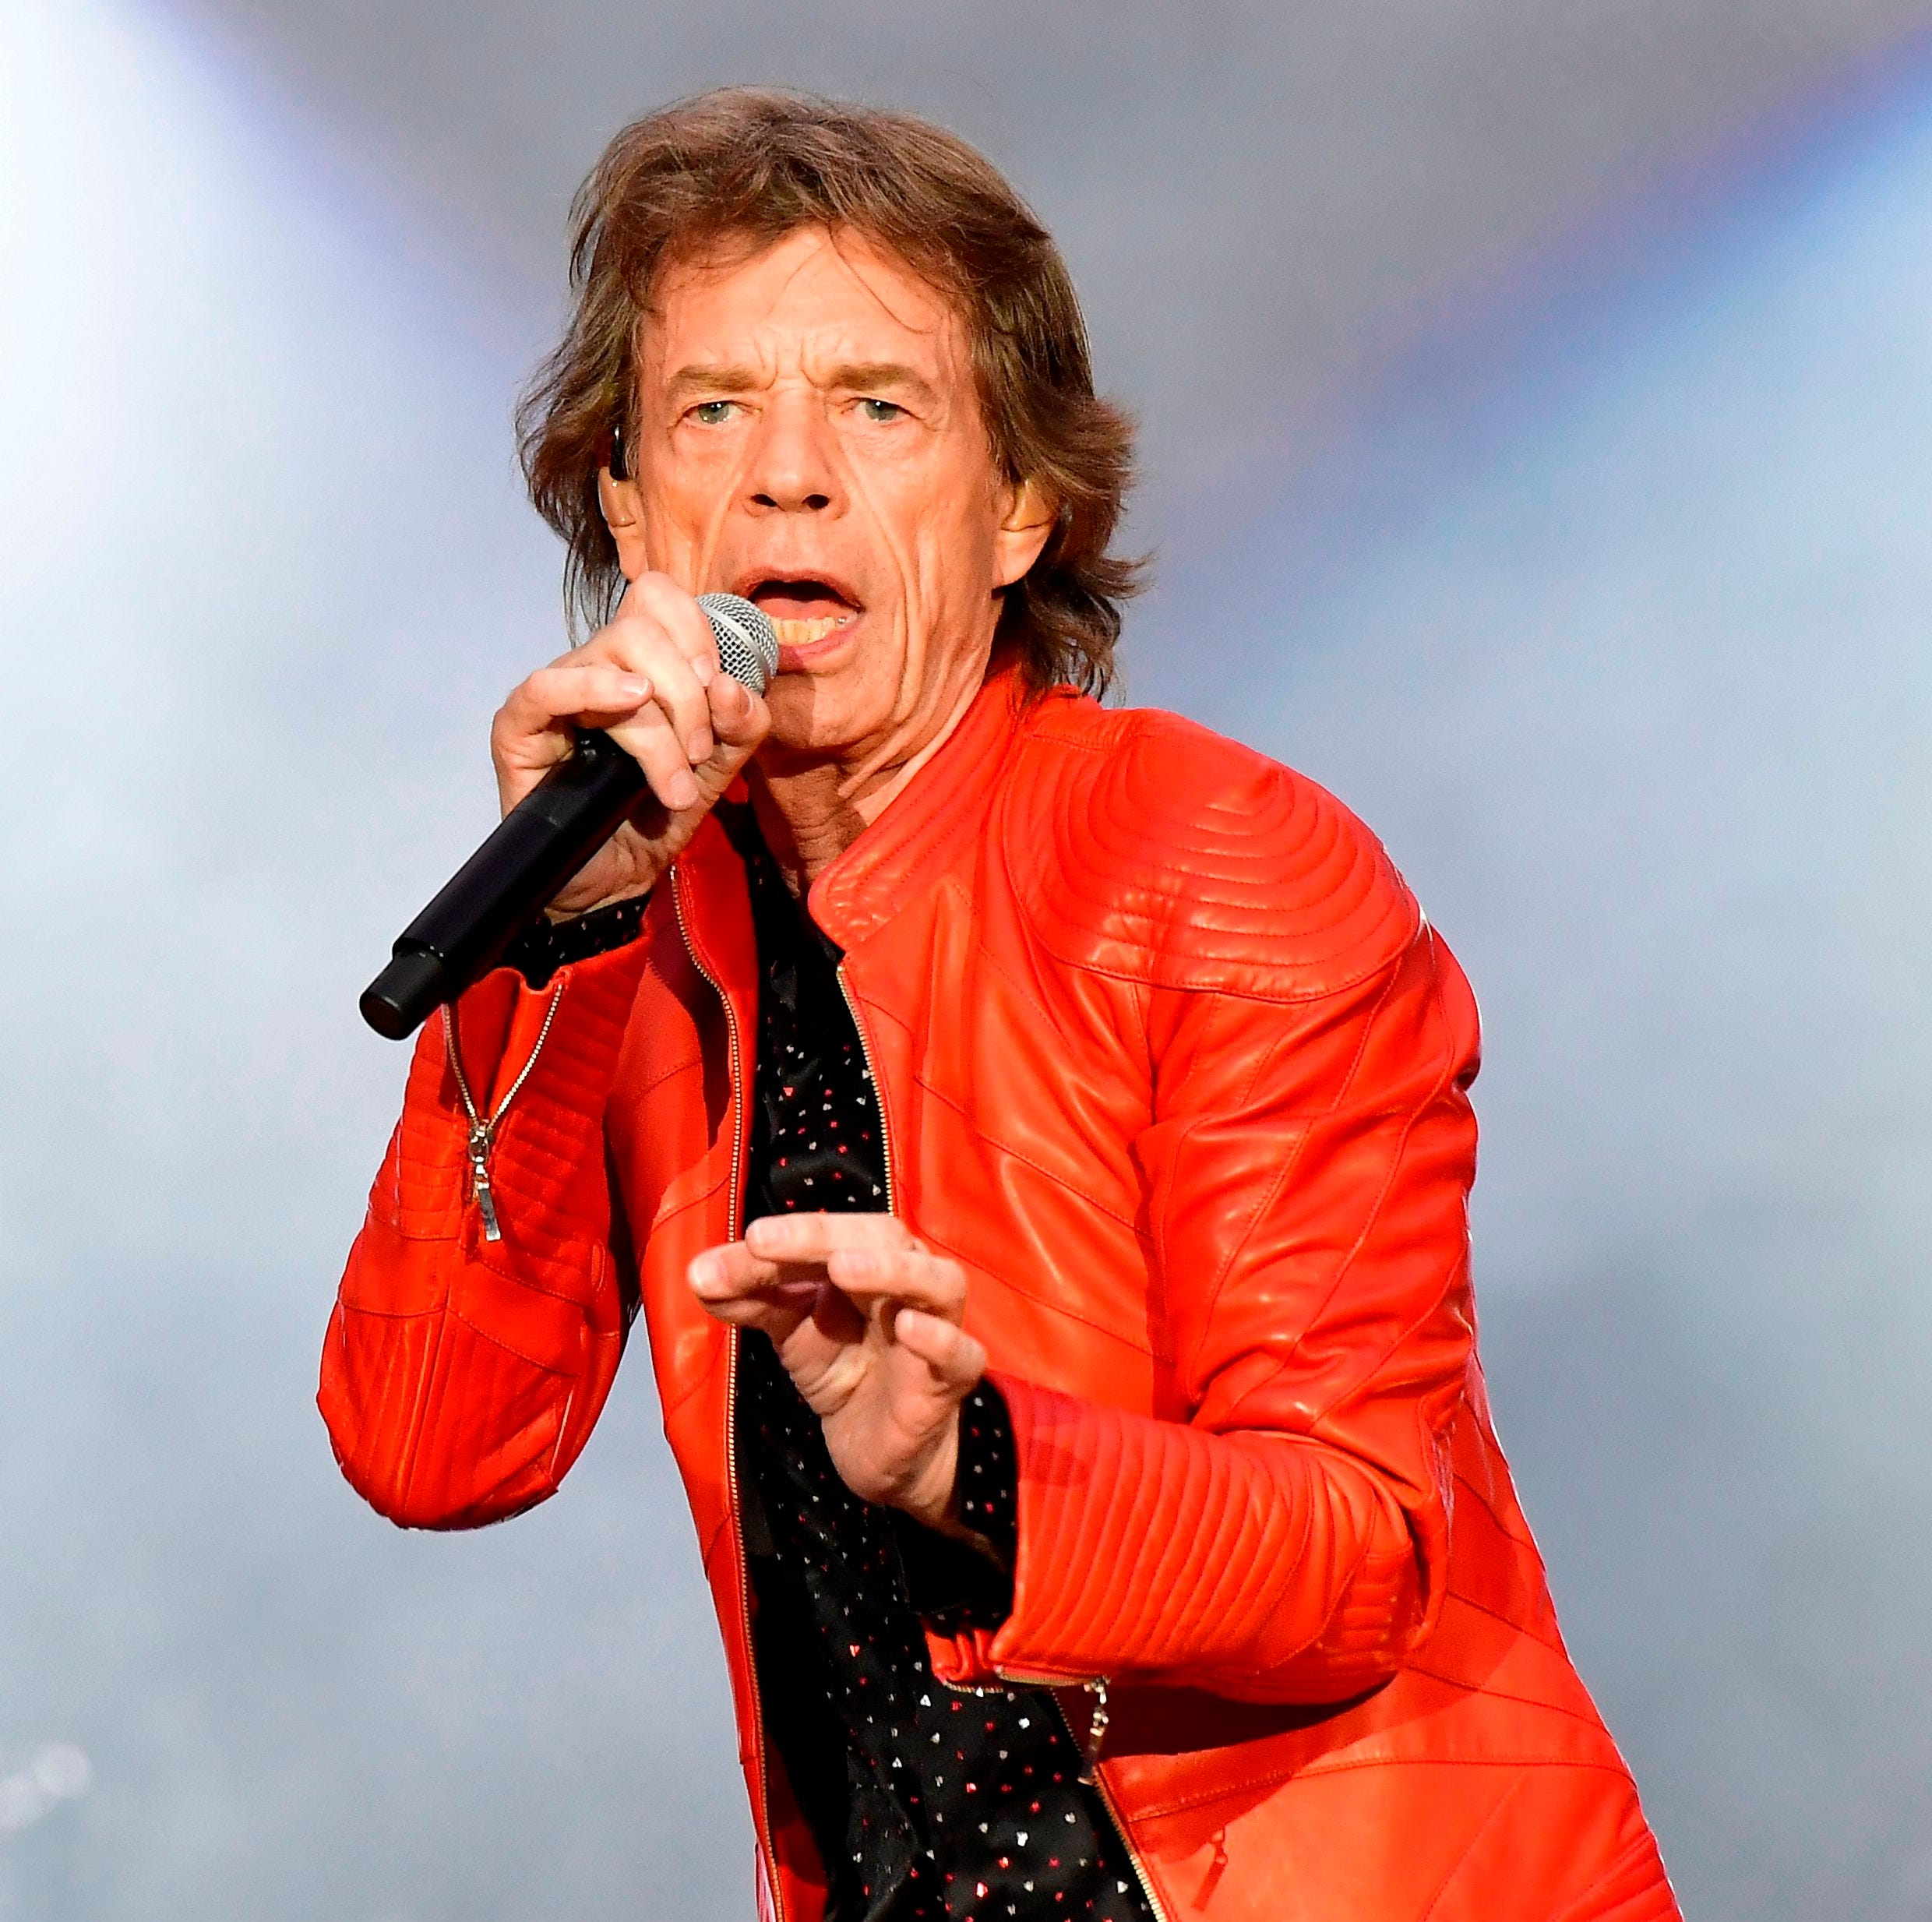 Fans send support after The Rolling Stones postpone tour due to Mick Jagger's health